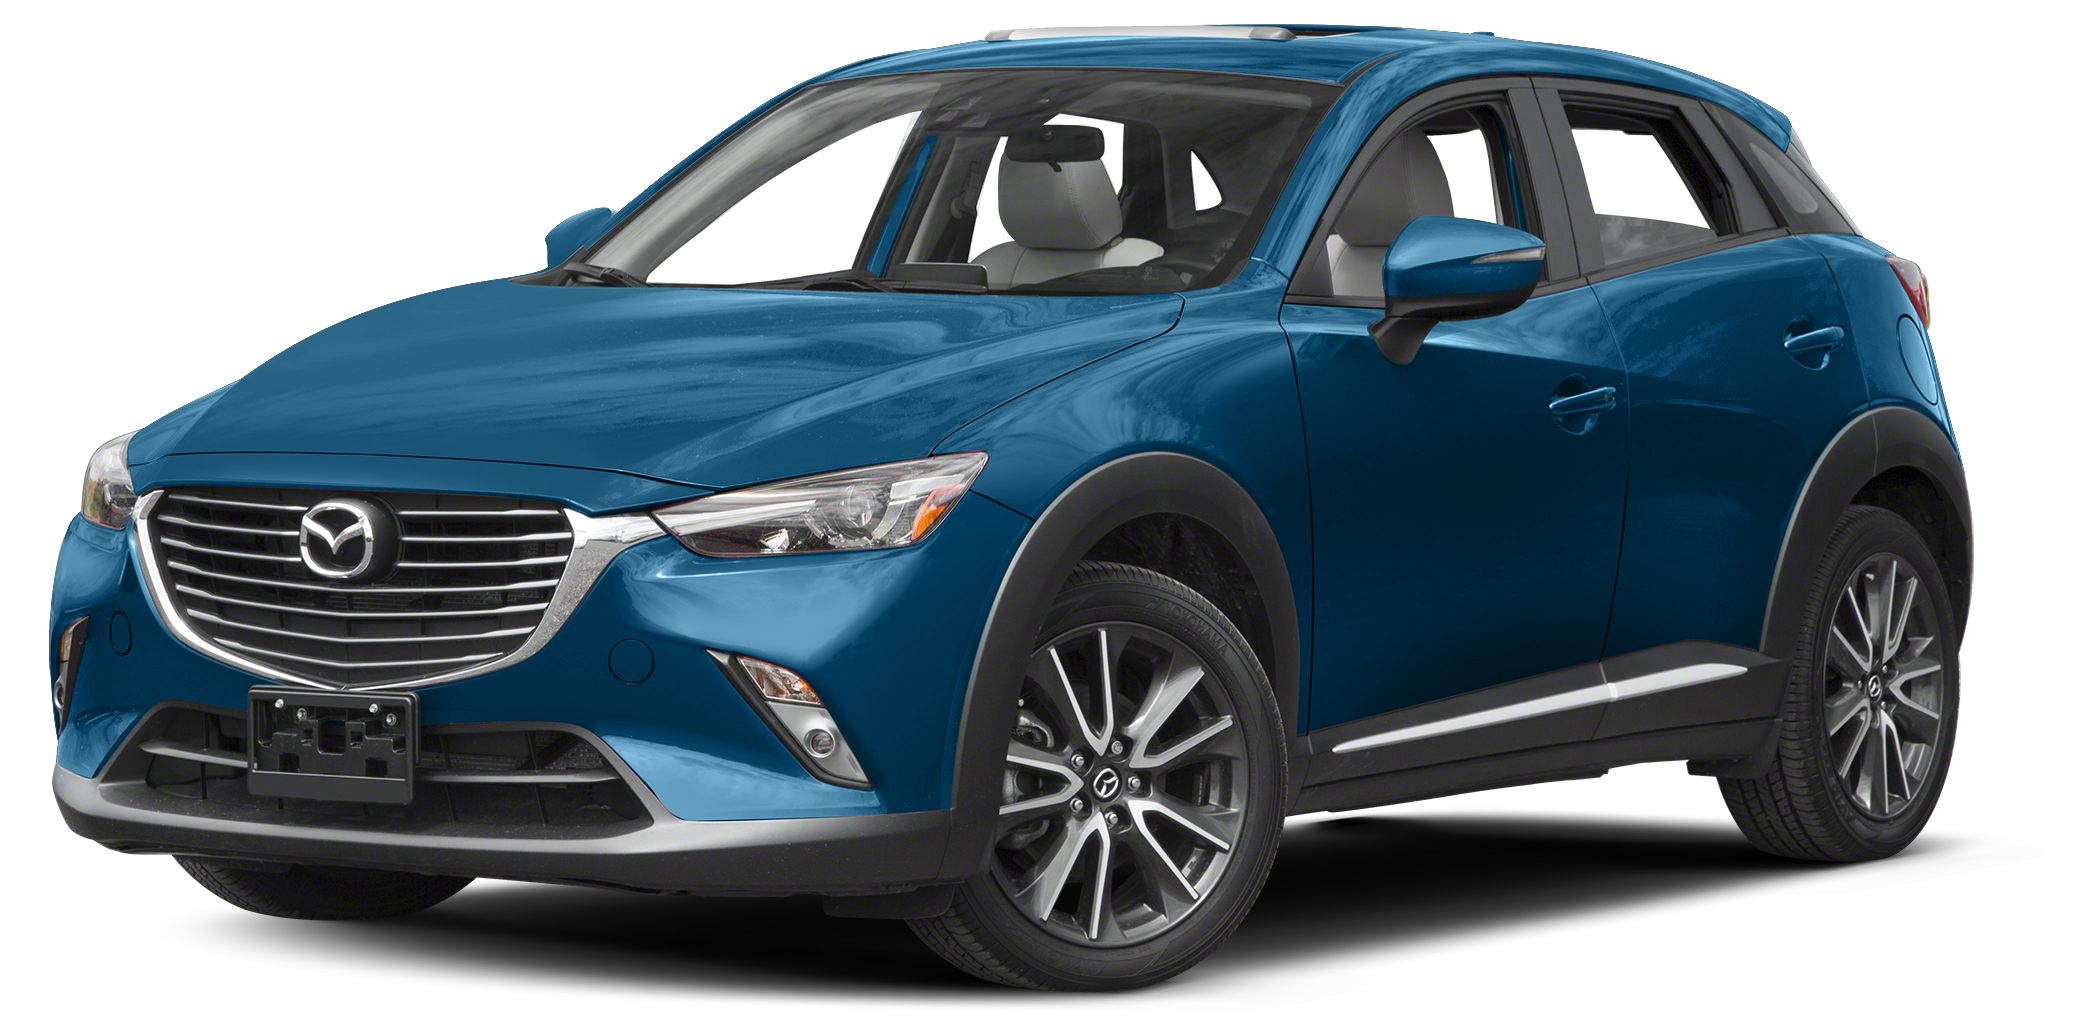 2016 Mazda CX-3 Grand Touring This Beautiful Blue 2016 Mazda CX-3 AWD Grand Touring is a One Owner